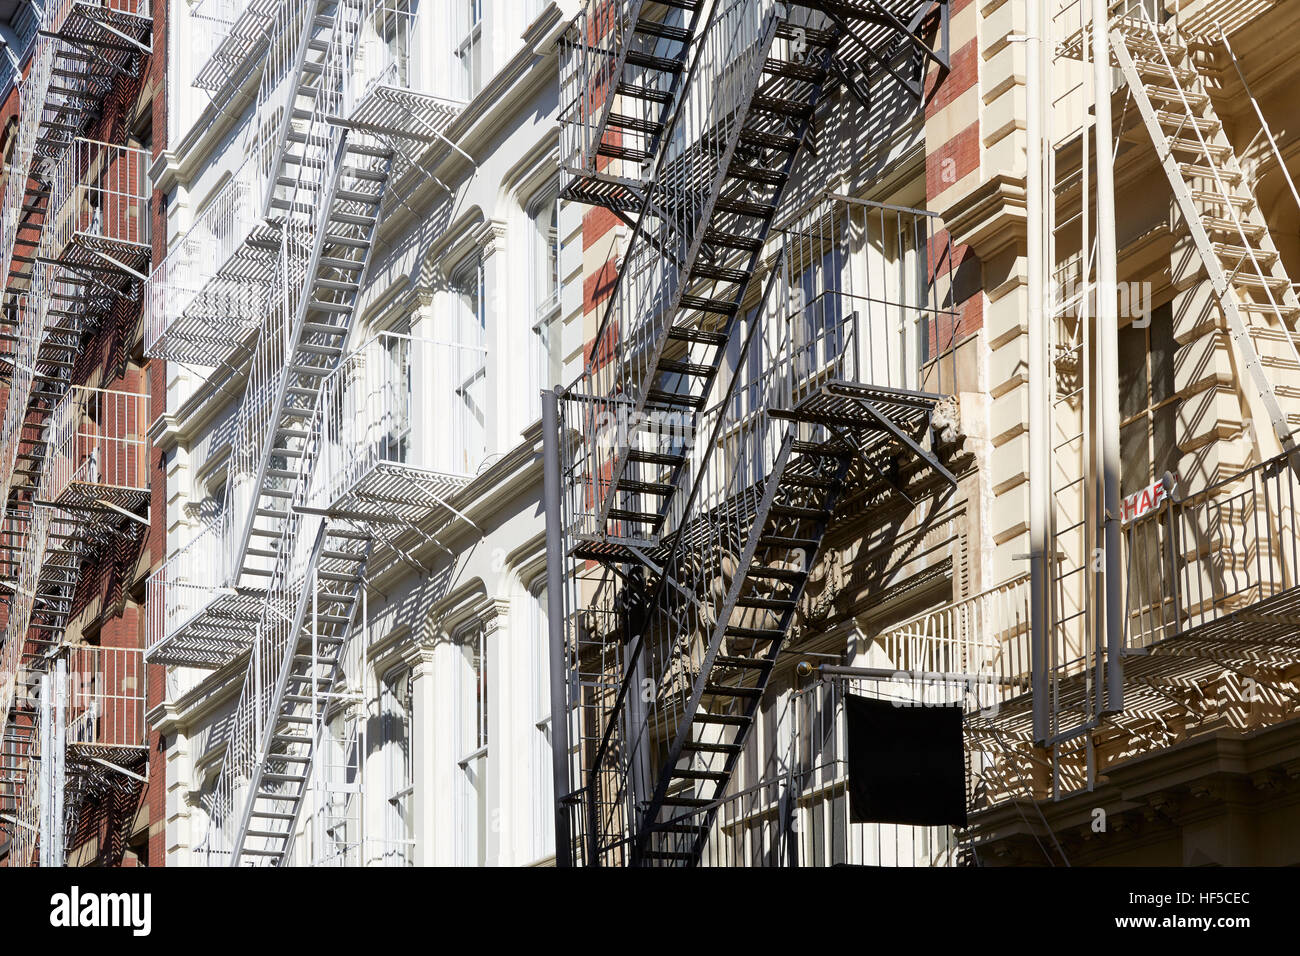 Houses facades with fire escape stairs, sunny day in Soho, New York background Stock Photo